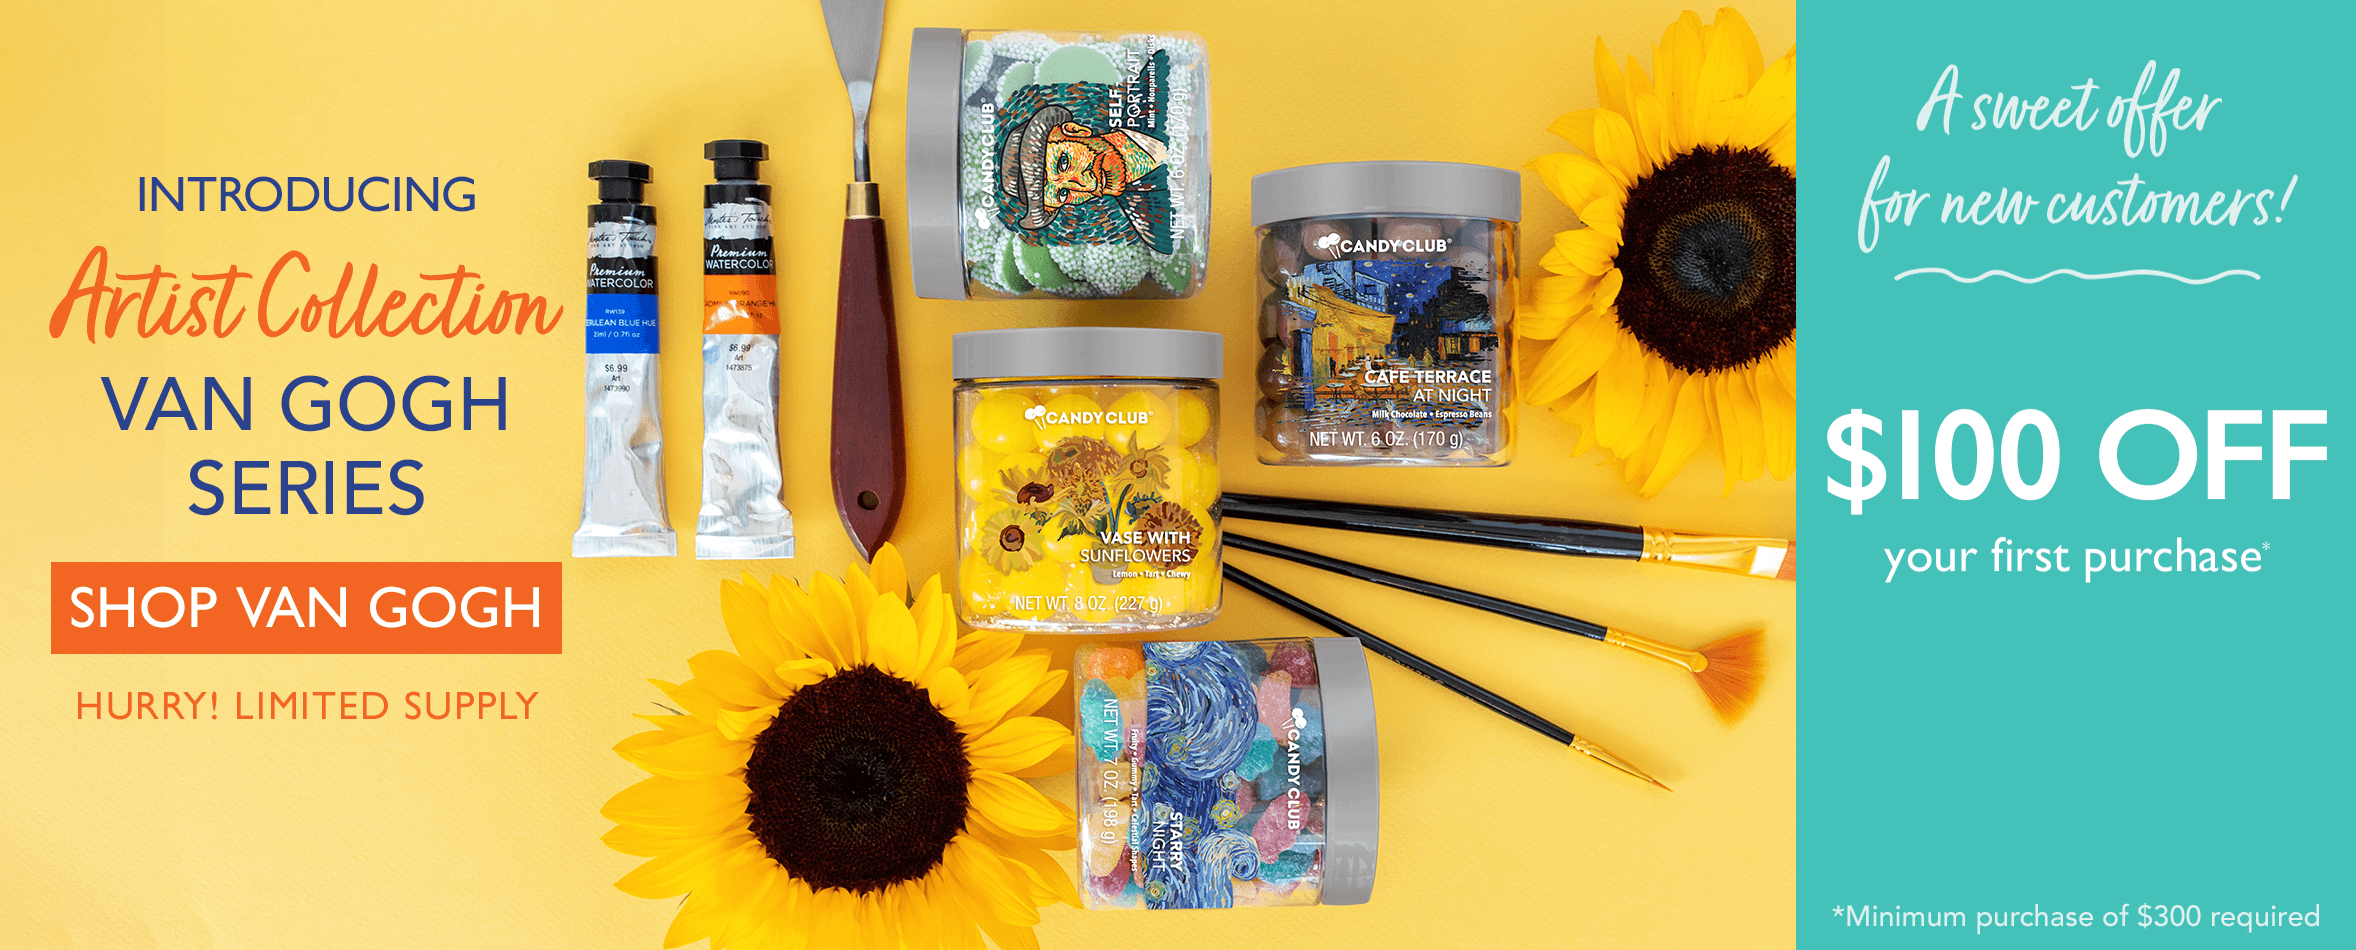 Introducing Artist Collections: Van Gogh Series. Shop Van Gogh. Hurry! Limited Supply.